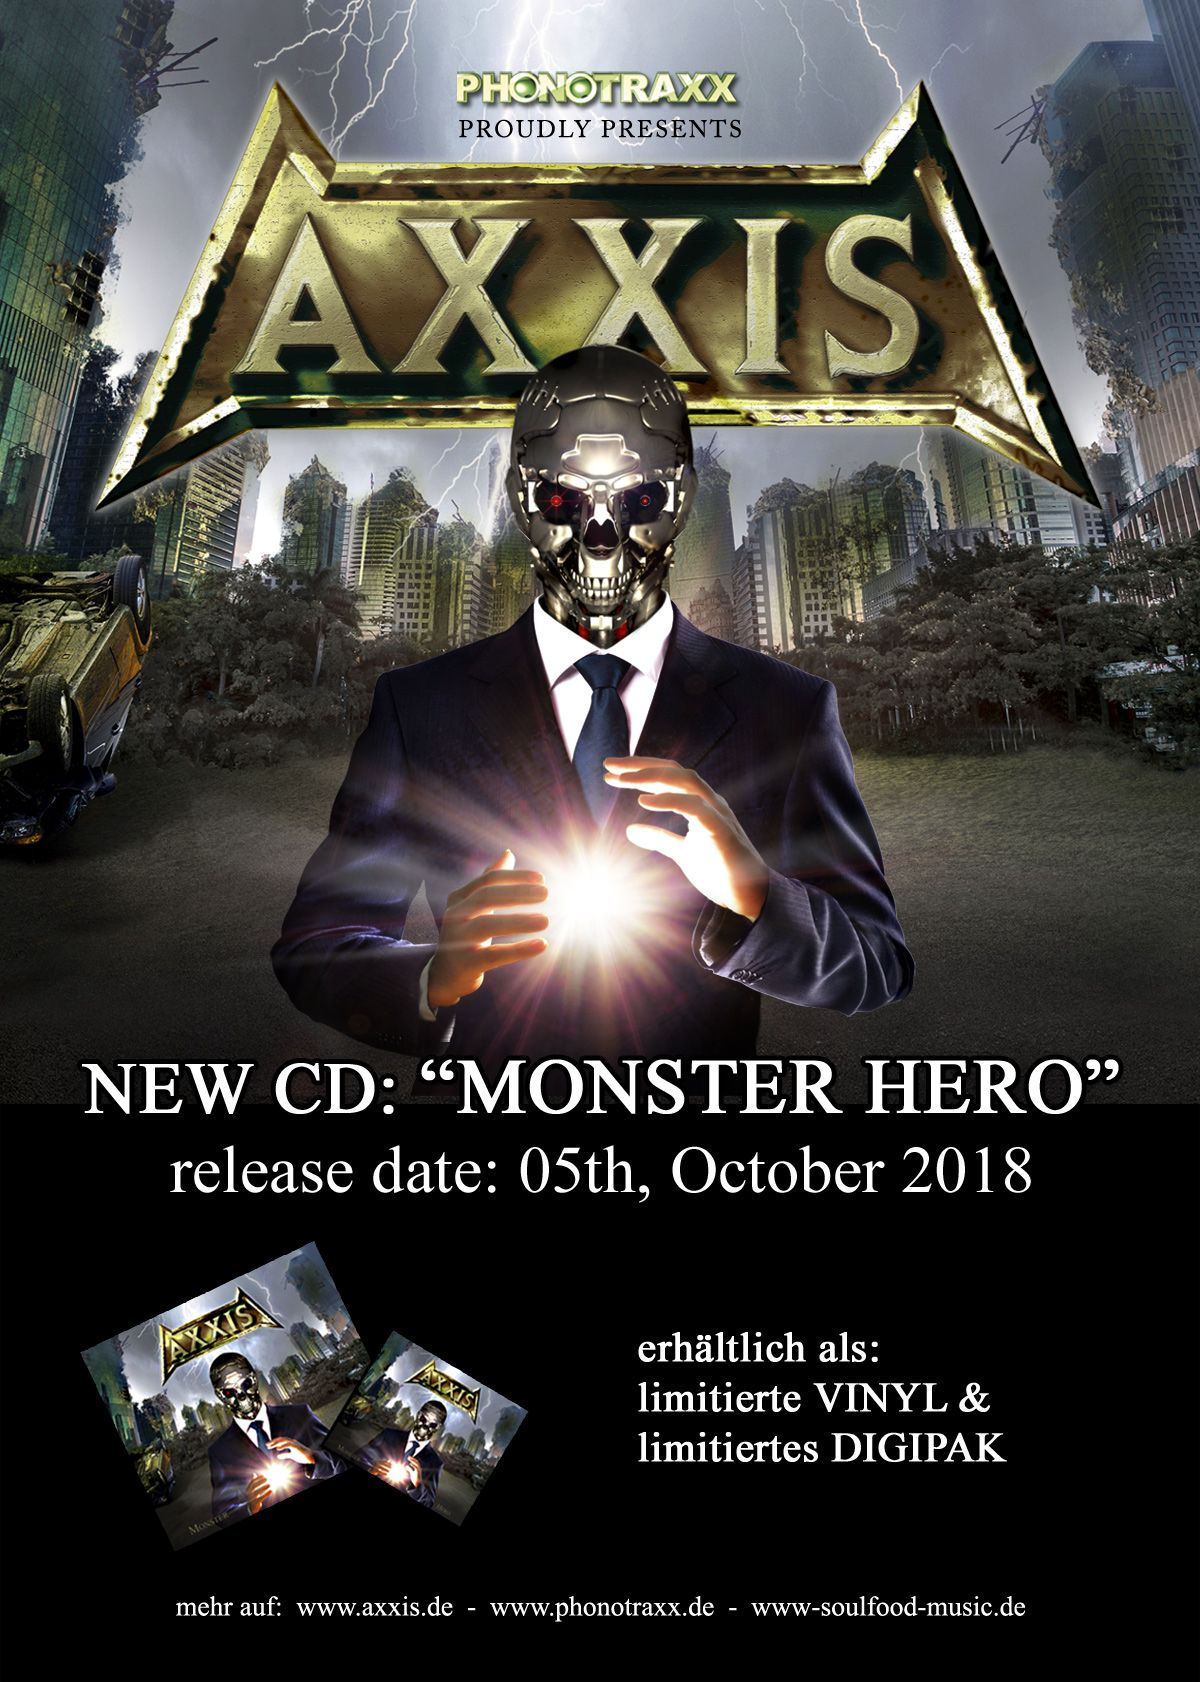 AXXIS MONSTER HERO